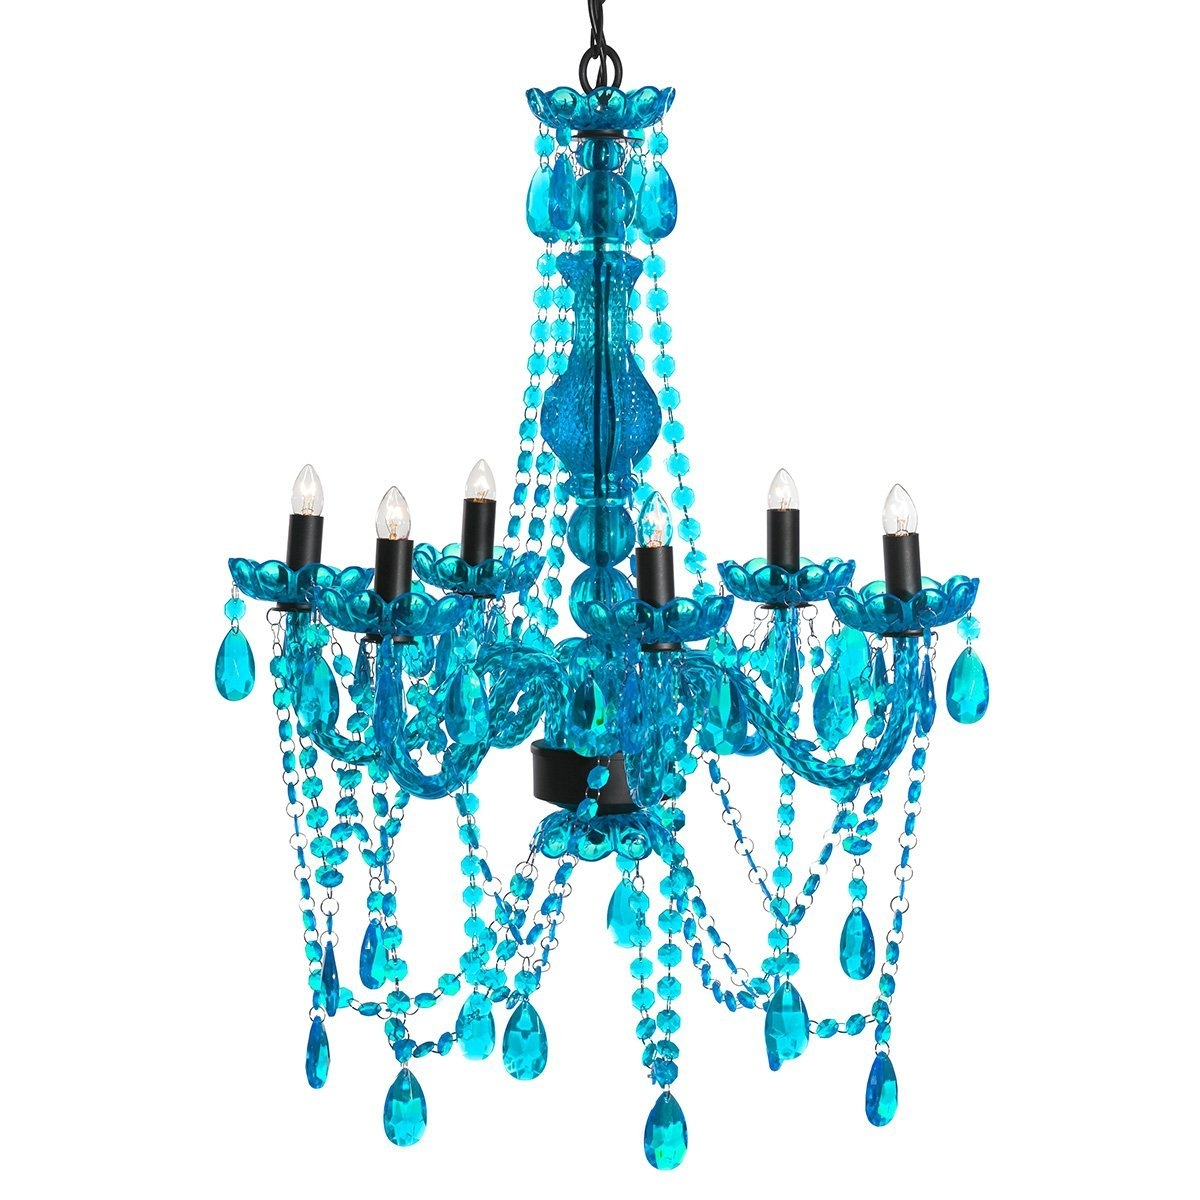 Amazon 3c4g Chandelier Turquoise Home Kitchen Within Turquoise Chandelier Lights (View 13 of 25)